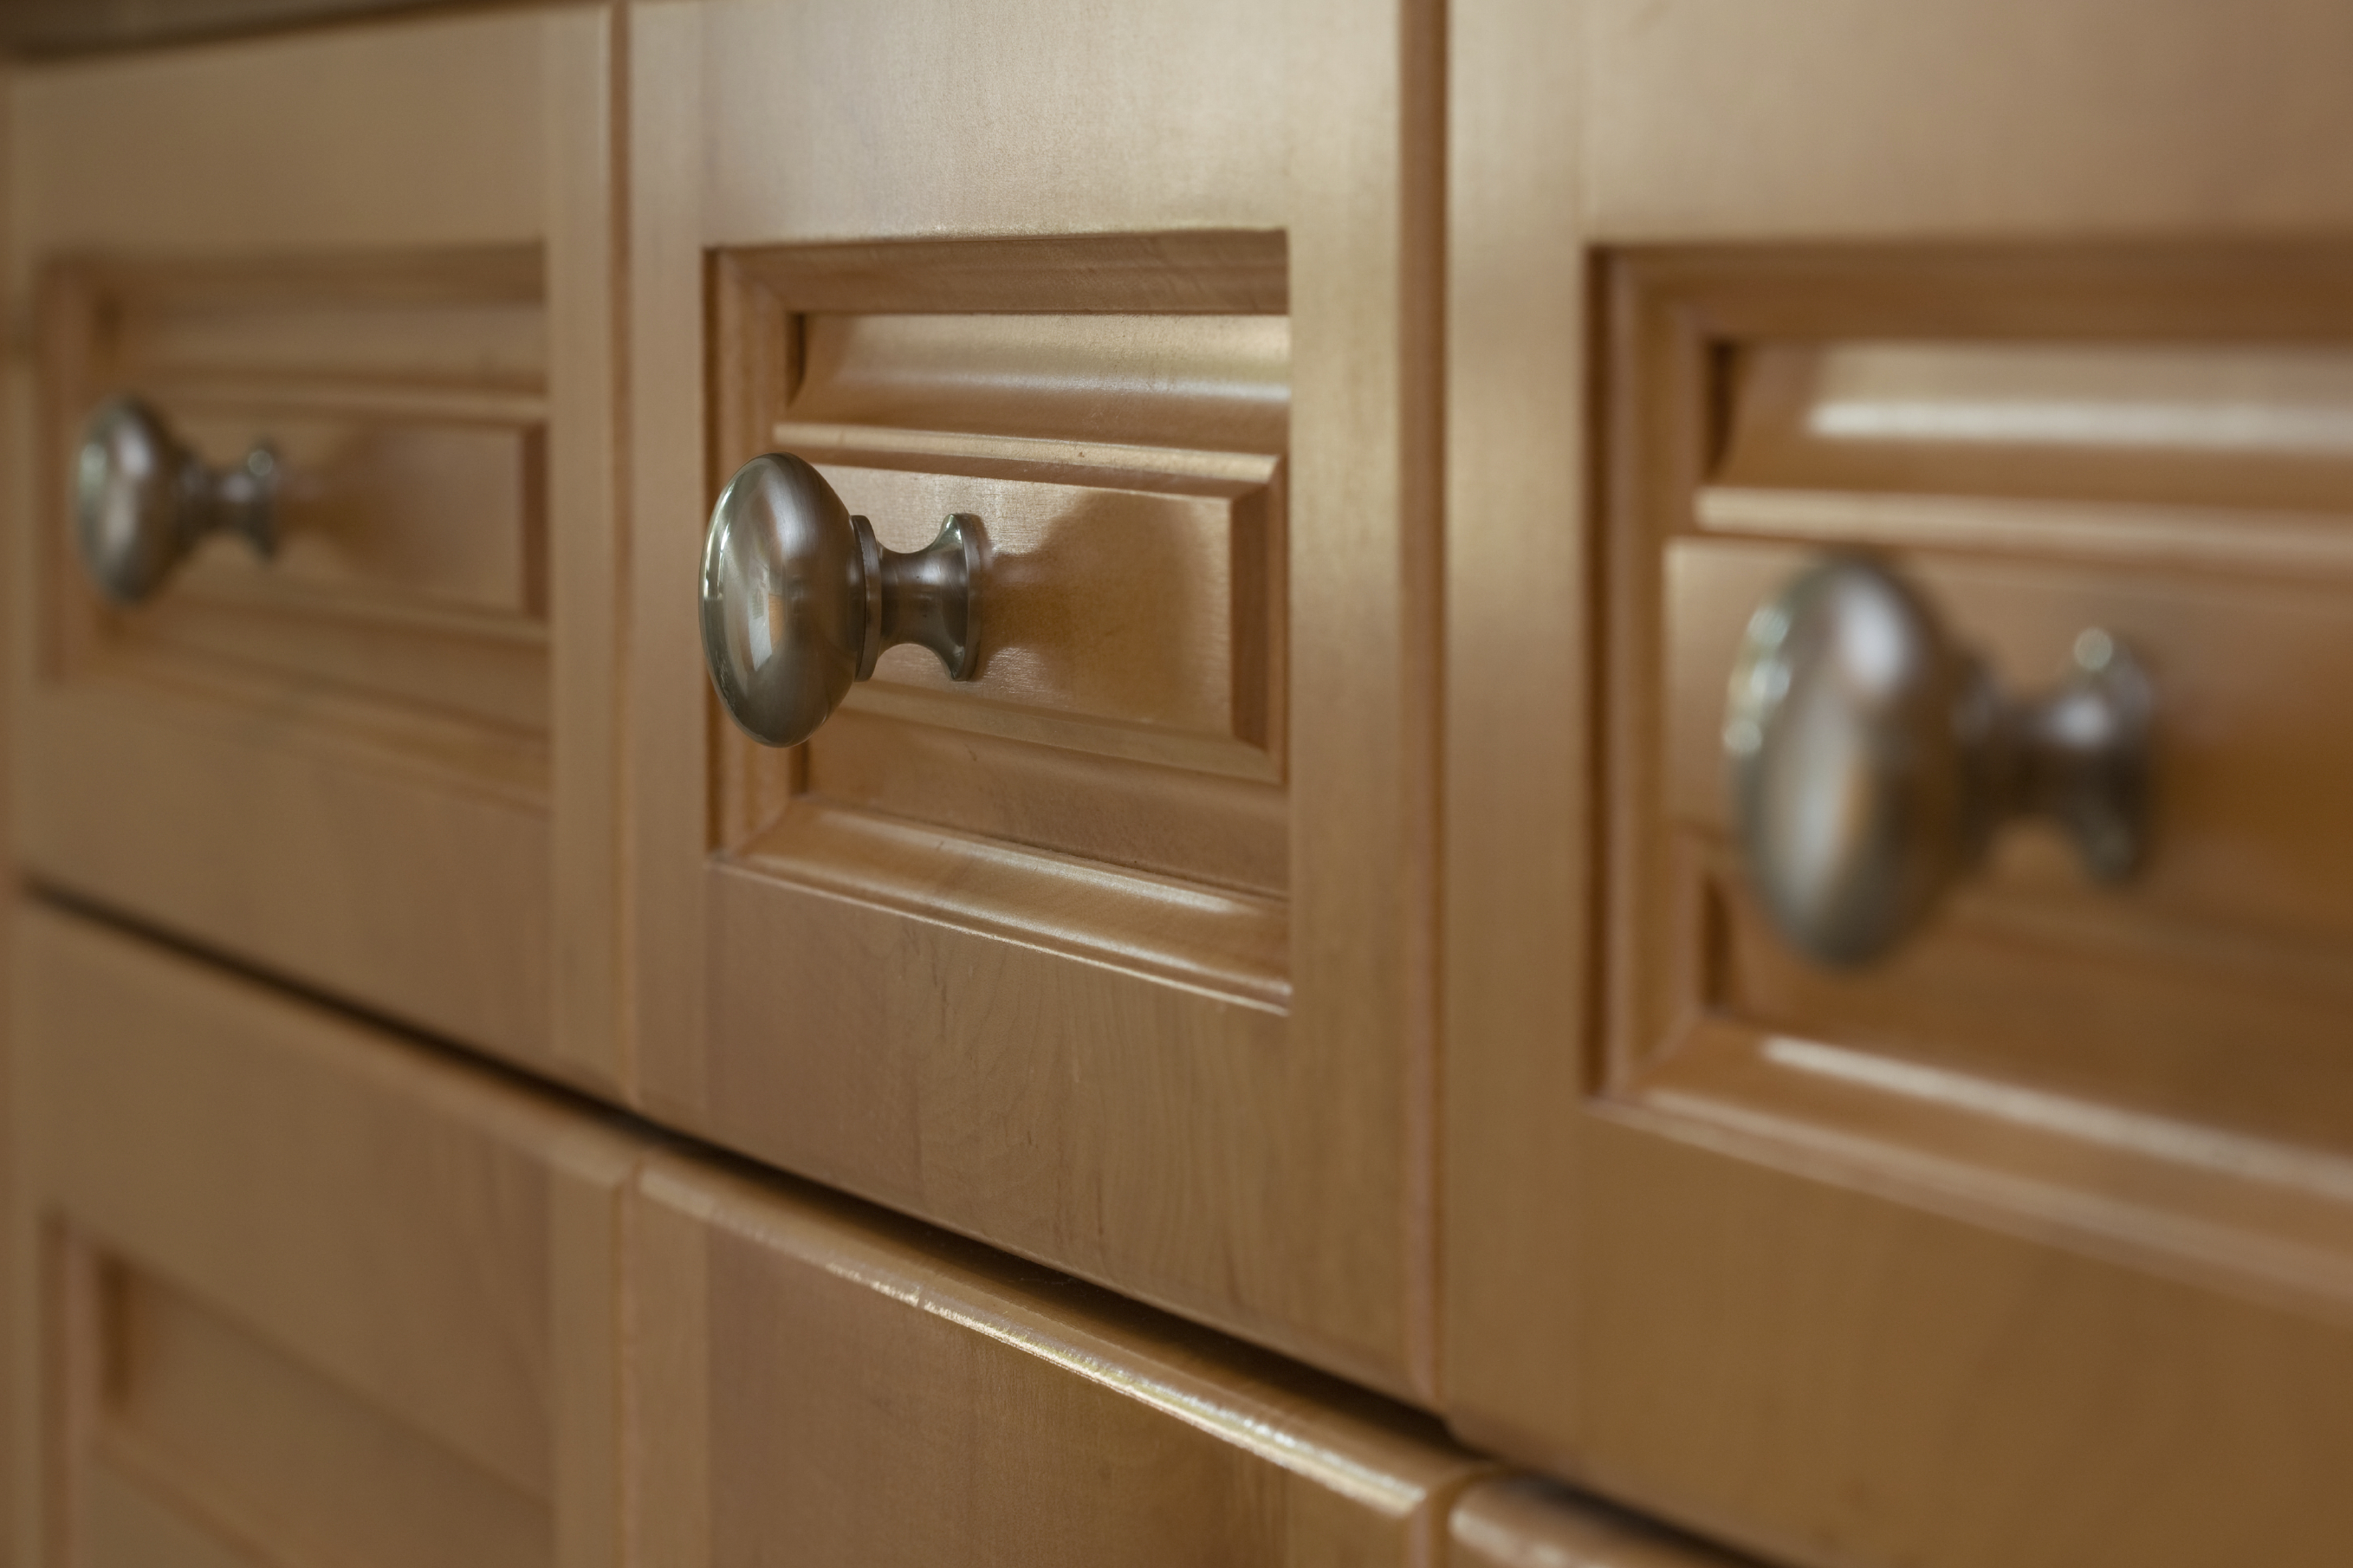 kitchen cupboard handles wall shelf a reader asks what is the correct size for cabinet